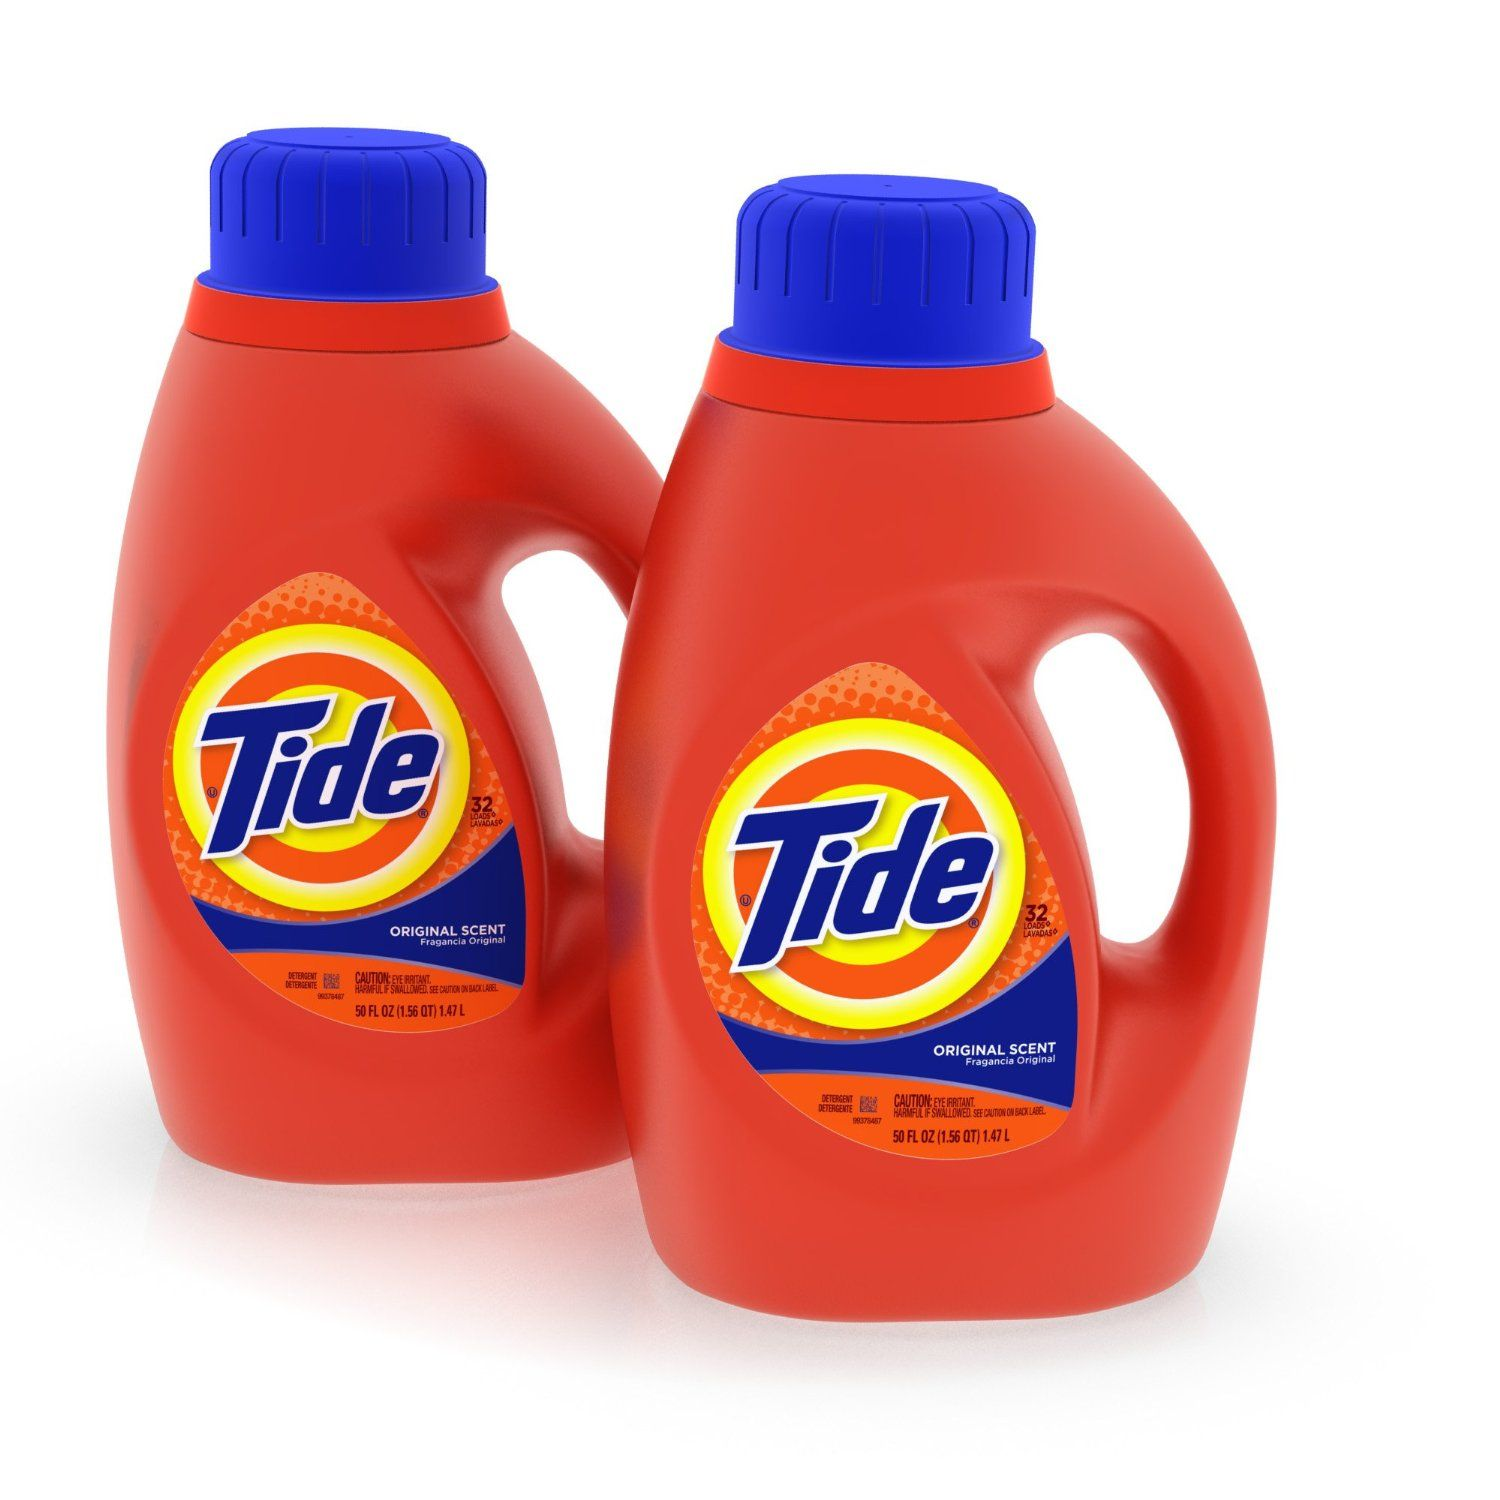 Tide High Efficiency Laundry Detergent Only 4 93 A Bottle Amazon